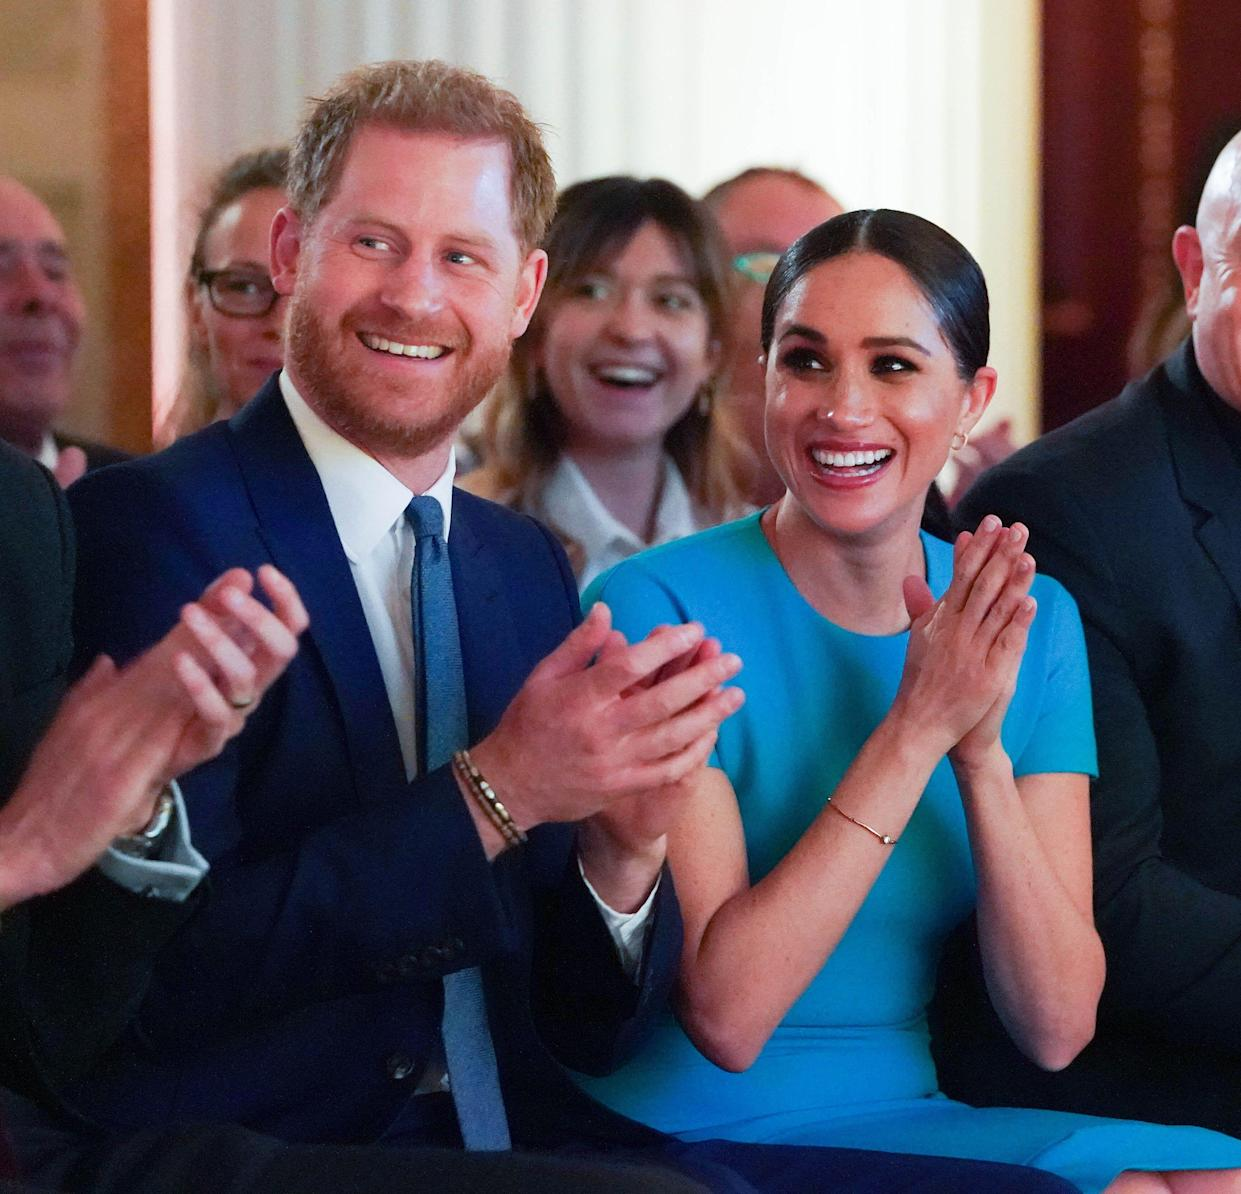 Harry and Meghan at the annual Endeavour Fund Awards in London on March 5, 2020. (Photo: WPA Pool via Getty Images)